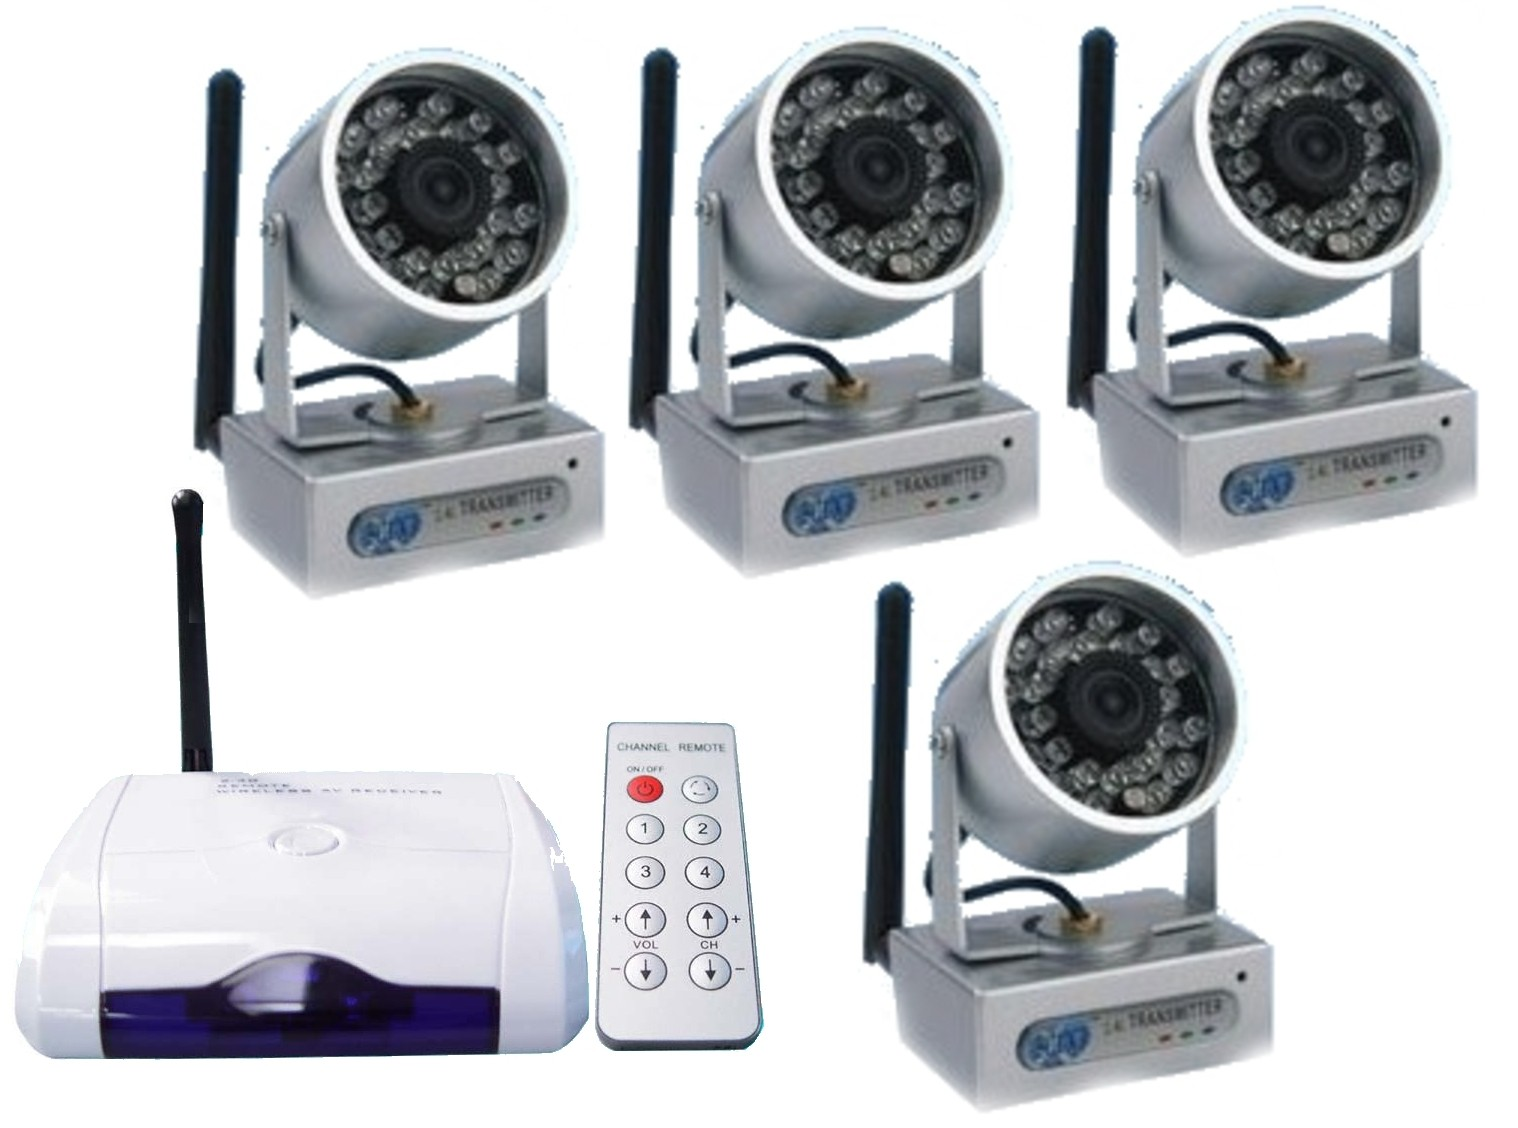 how to connect cctv camera to computer without dvr